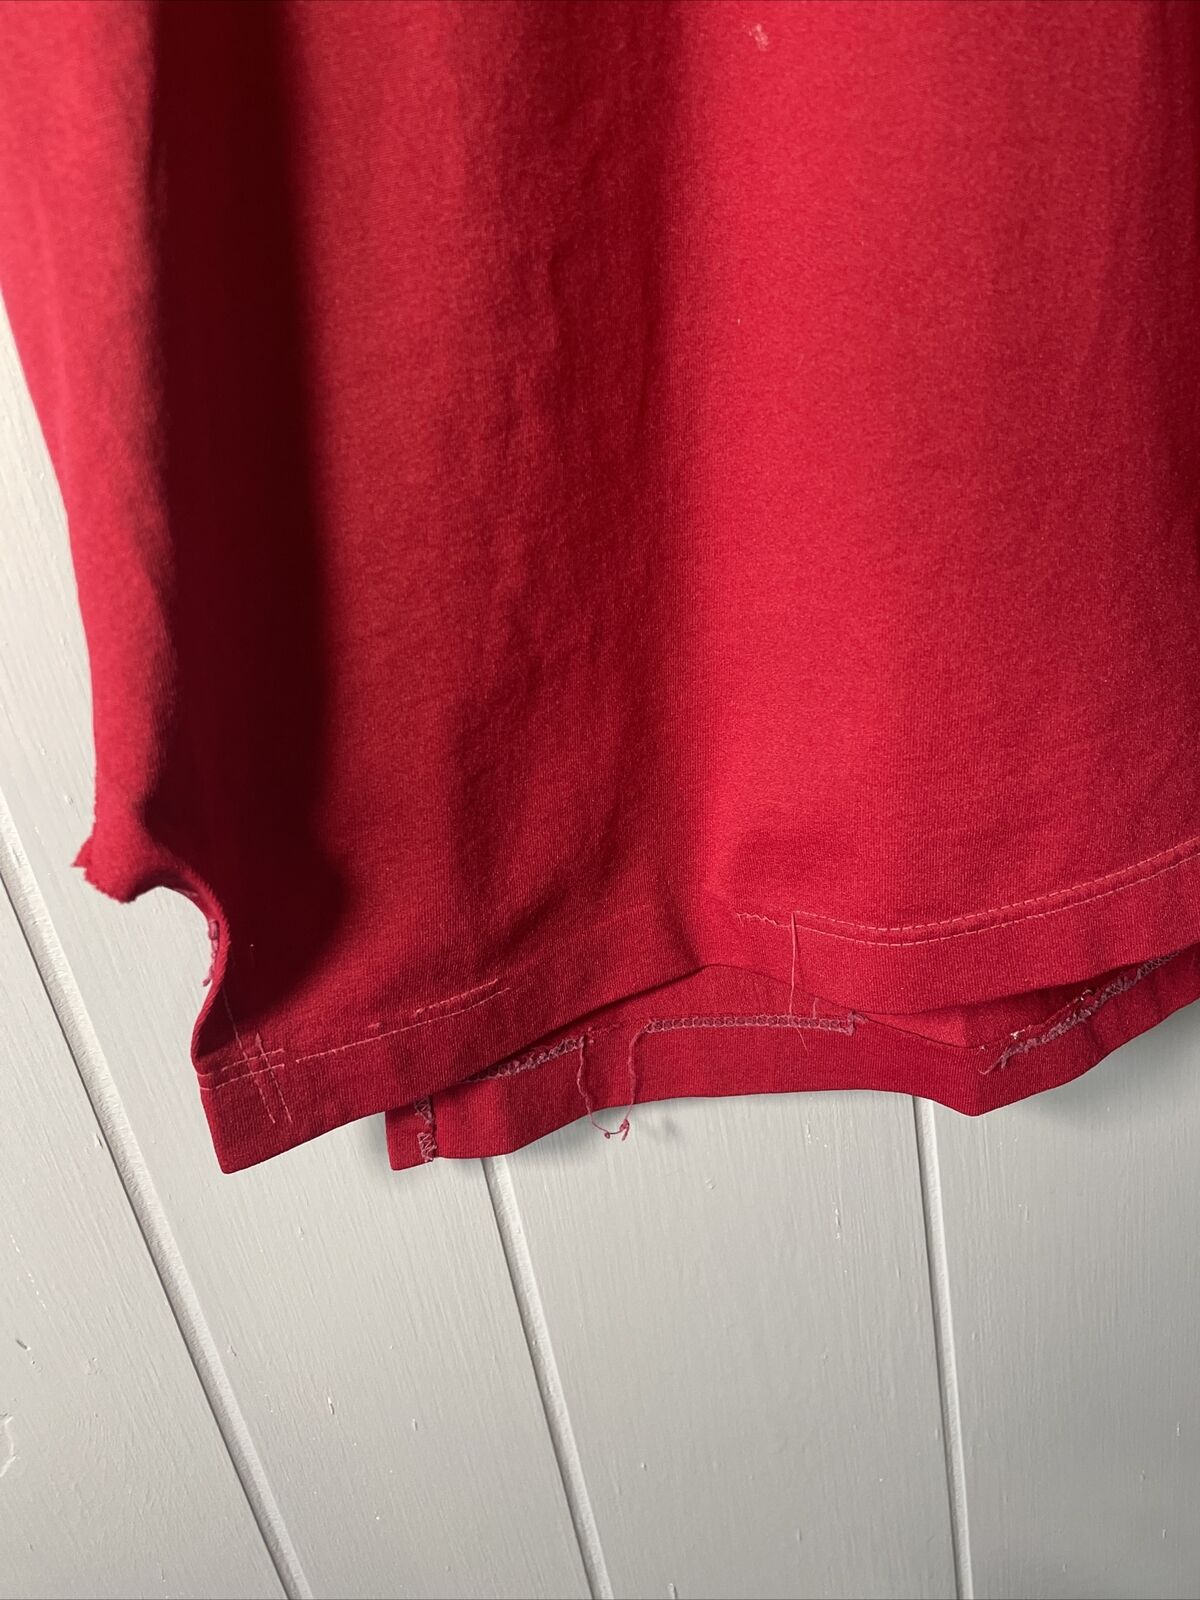 VTG 70's Russell Athletic Red Football Jersey #21… - image 2